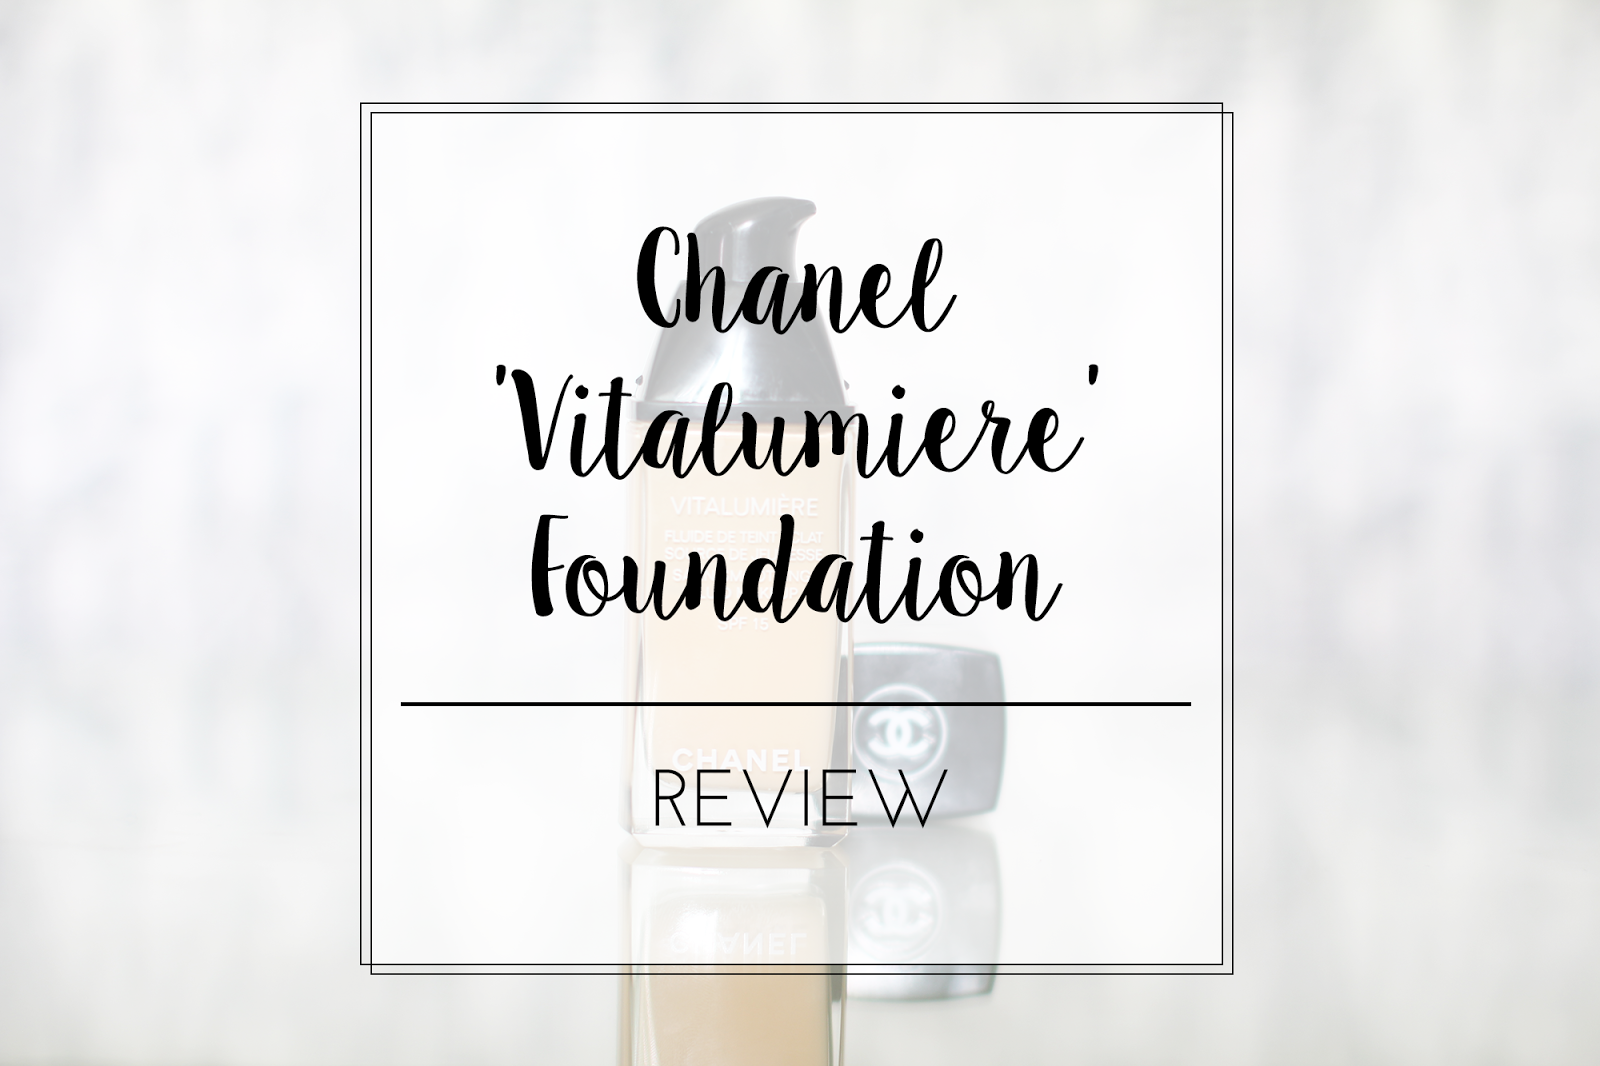 reviews on chanel vitalumiere foundation